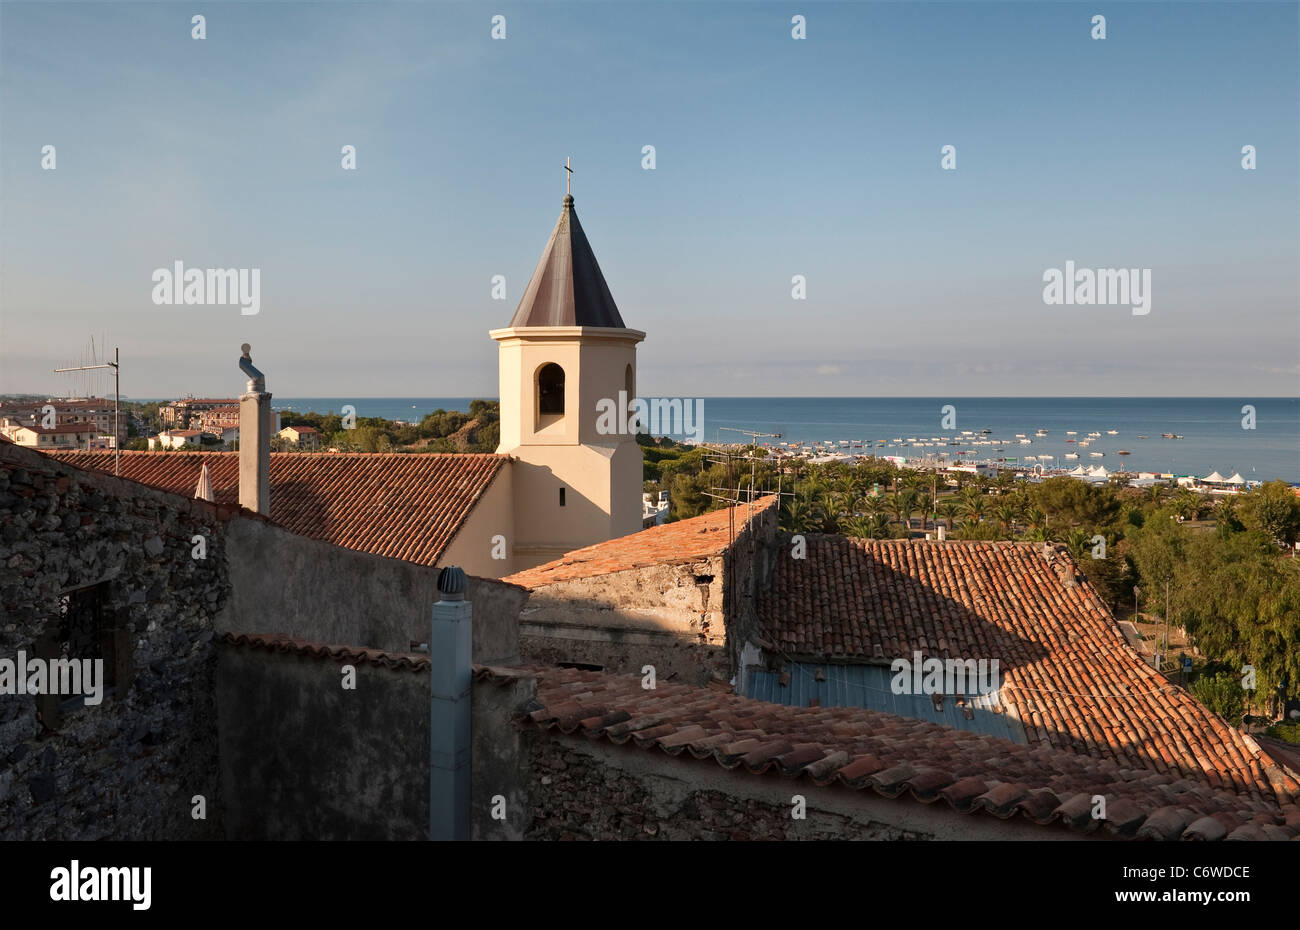 Scalea, Calabria, Italy. View over the tiled roofs of the old town towards the sea - Stock Image